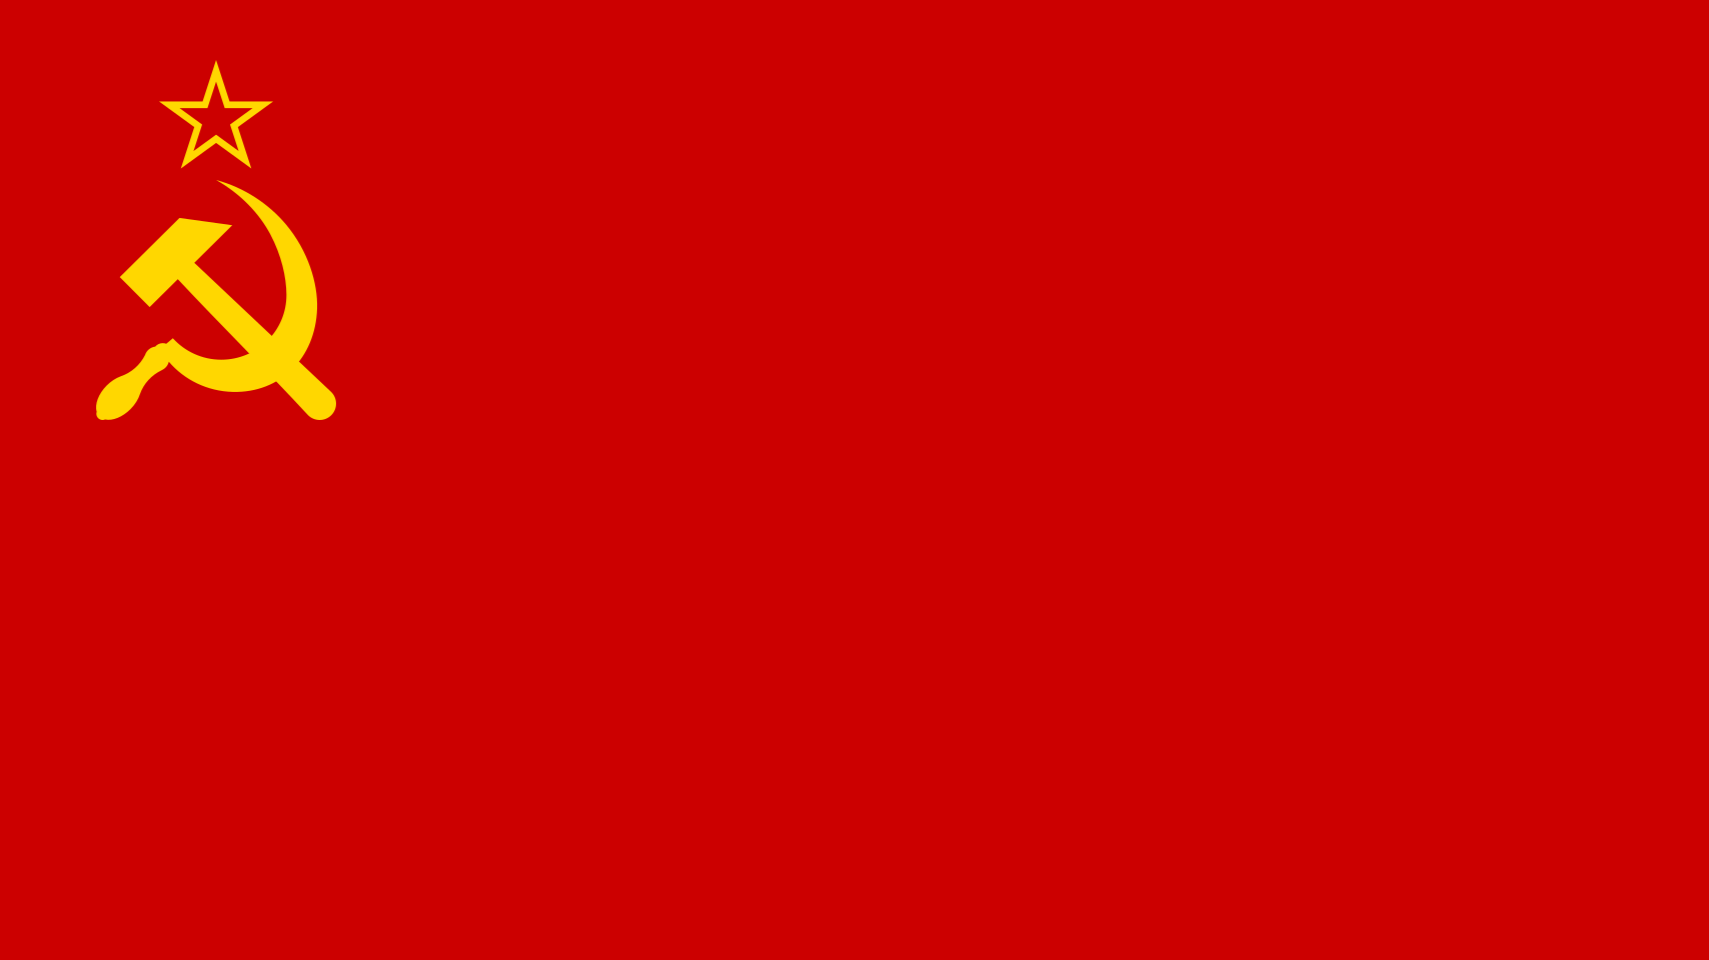 Flag of the Soviet Union/USSR.